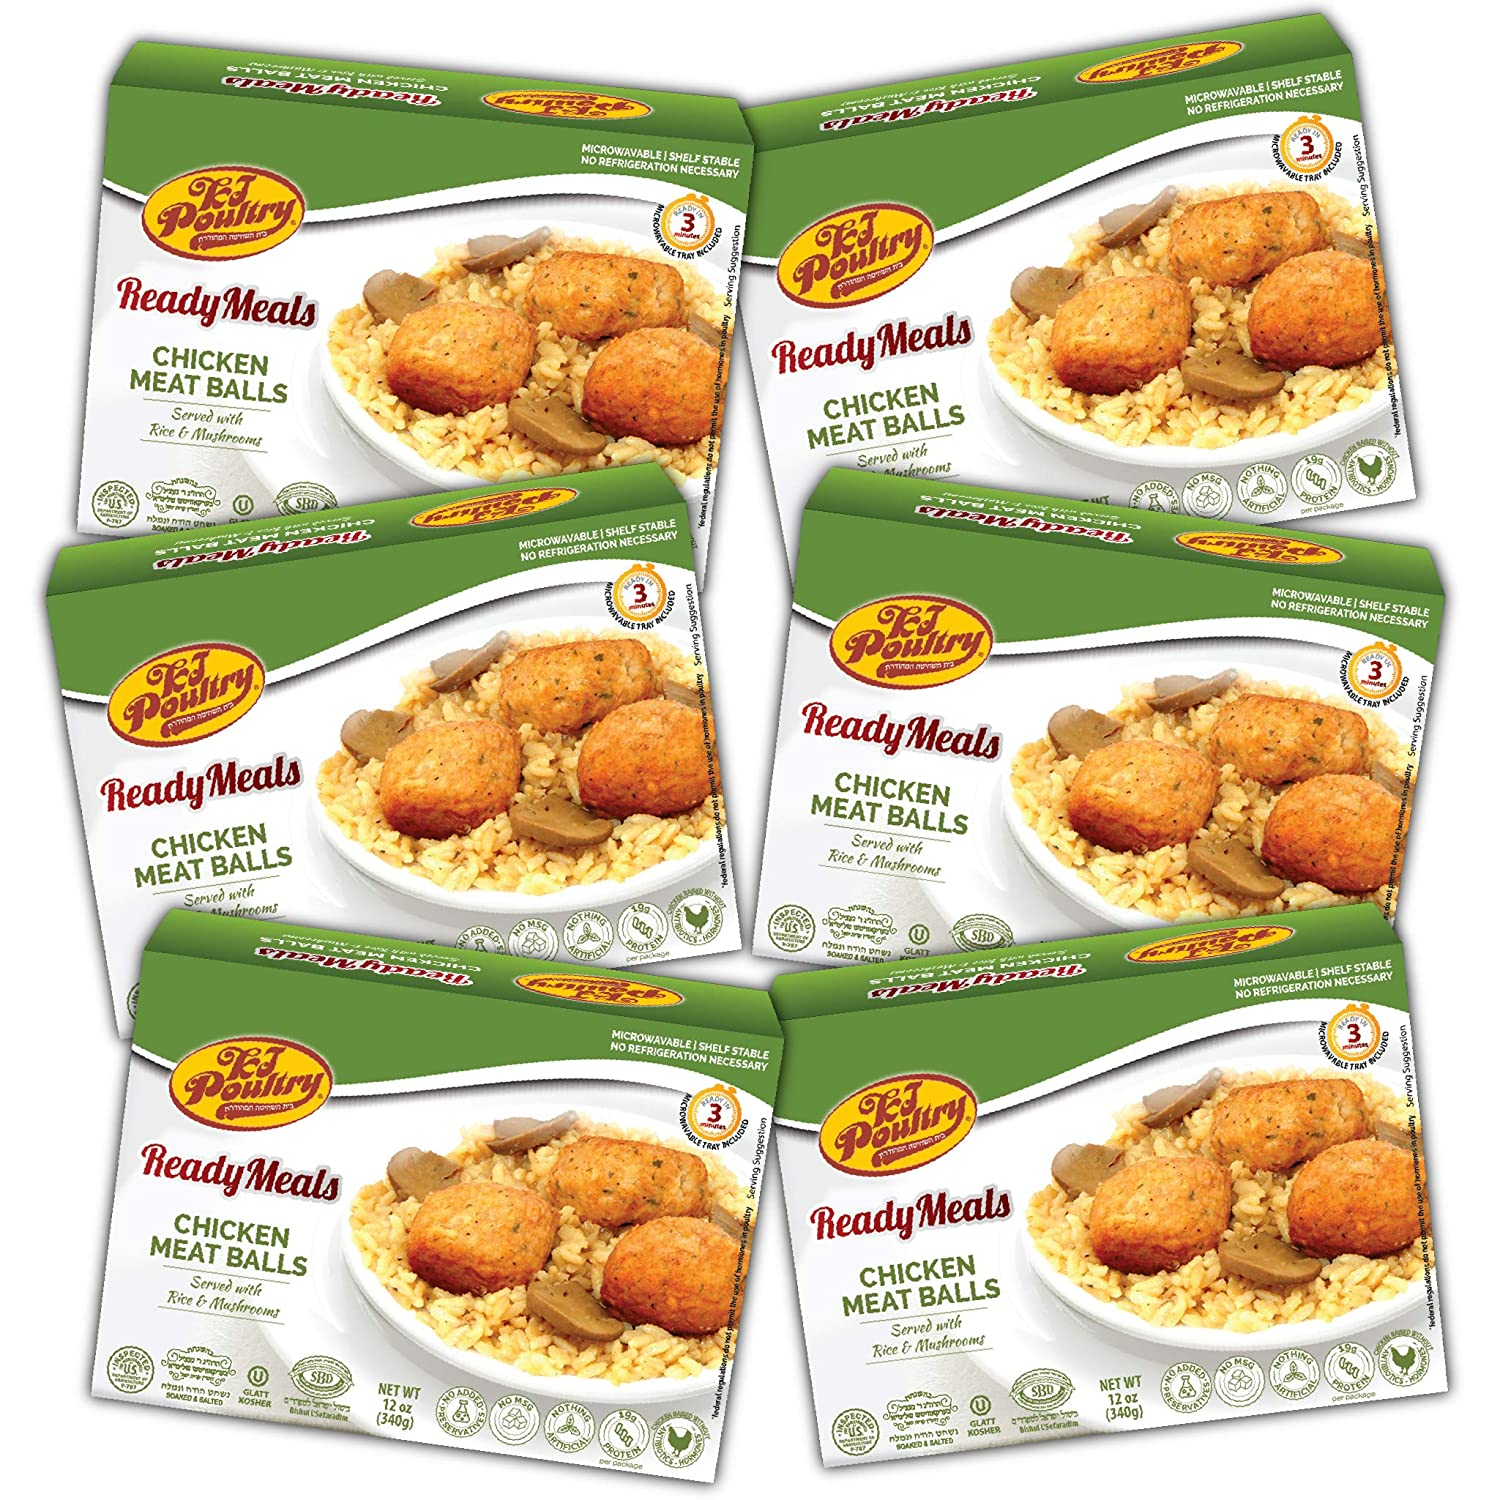 Kosher Mre Meat Meals Ready to Eat, Chicken Meat Balls (6 Pack) - Prepared Entree Fully Cooked, Shelf Stable Microwave Dinner, Deliverd Home – Travel, Military, Camping, Emergency Survival Canned Food